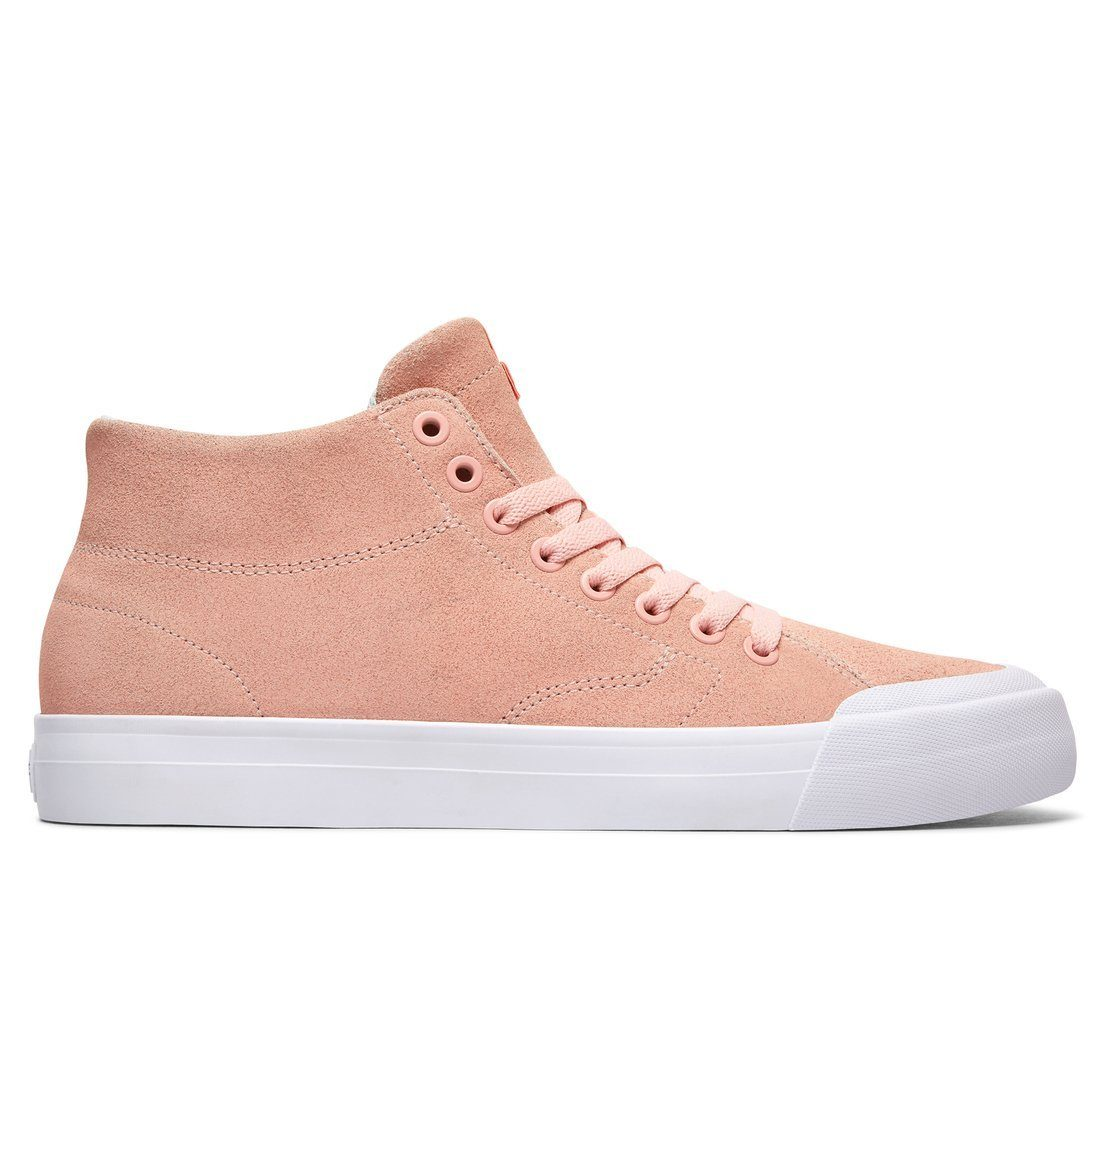 DC Hi Schuhes Hi DC Tops  Evan Smith HI Zero  kaufen   OTTO 136b03